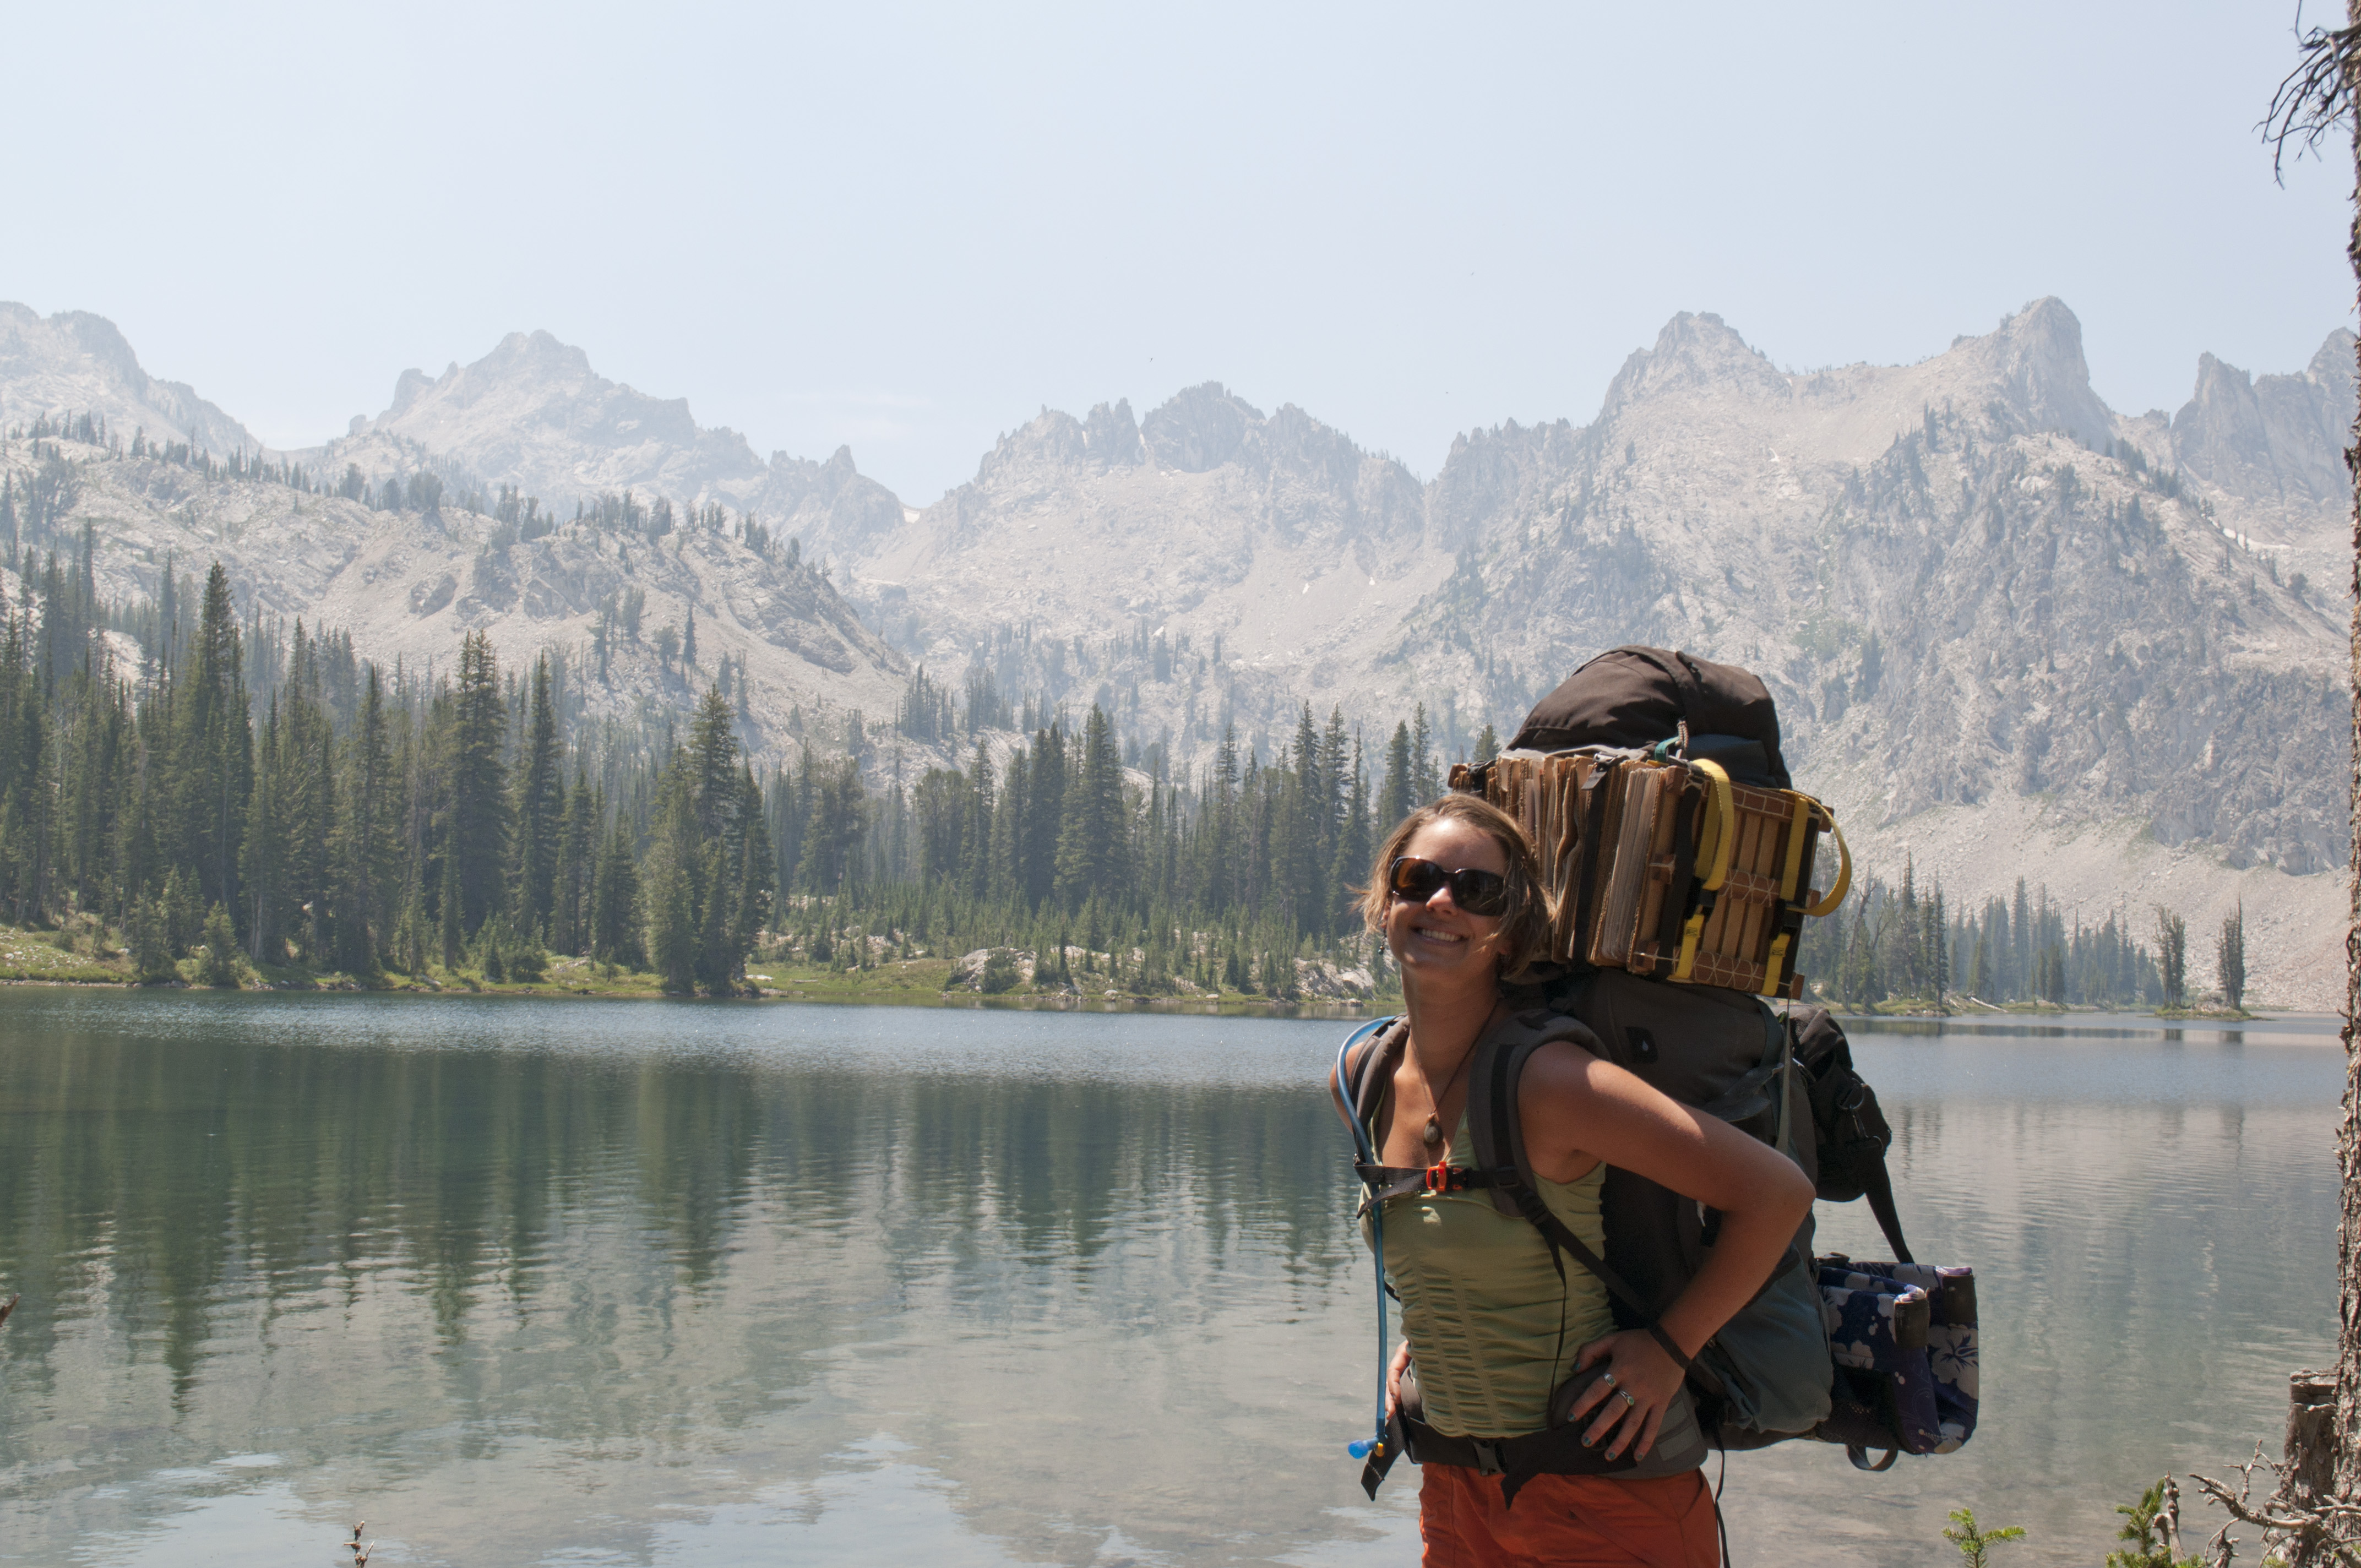 Hannah-next-to-mountain-lake-with-backpack